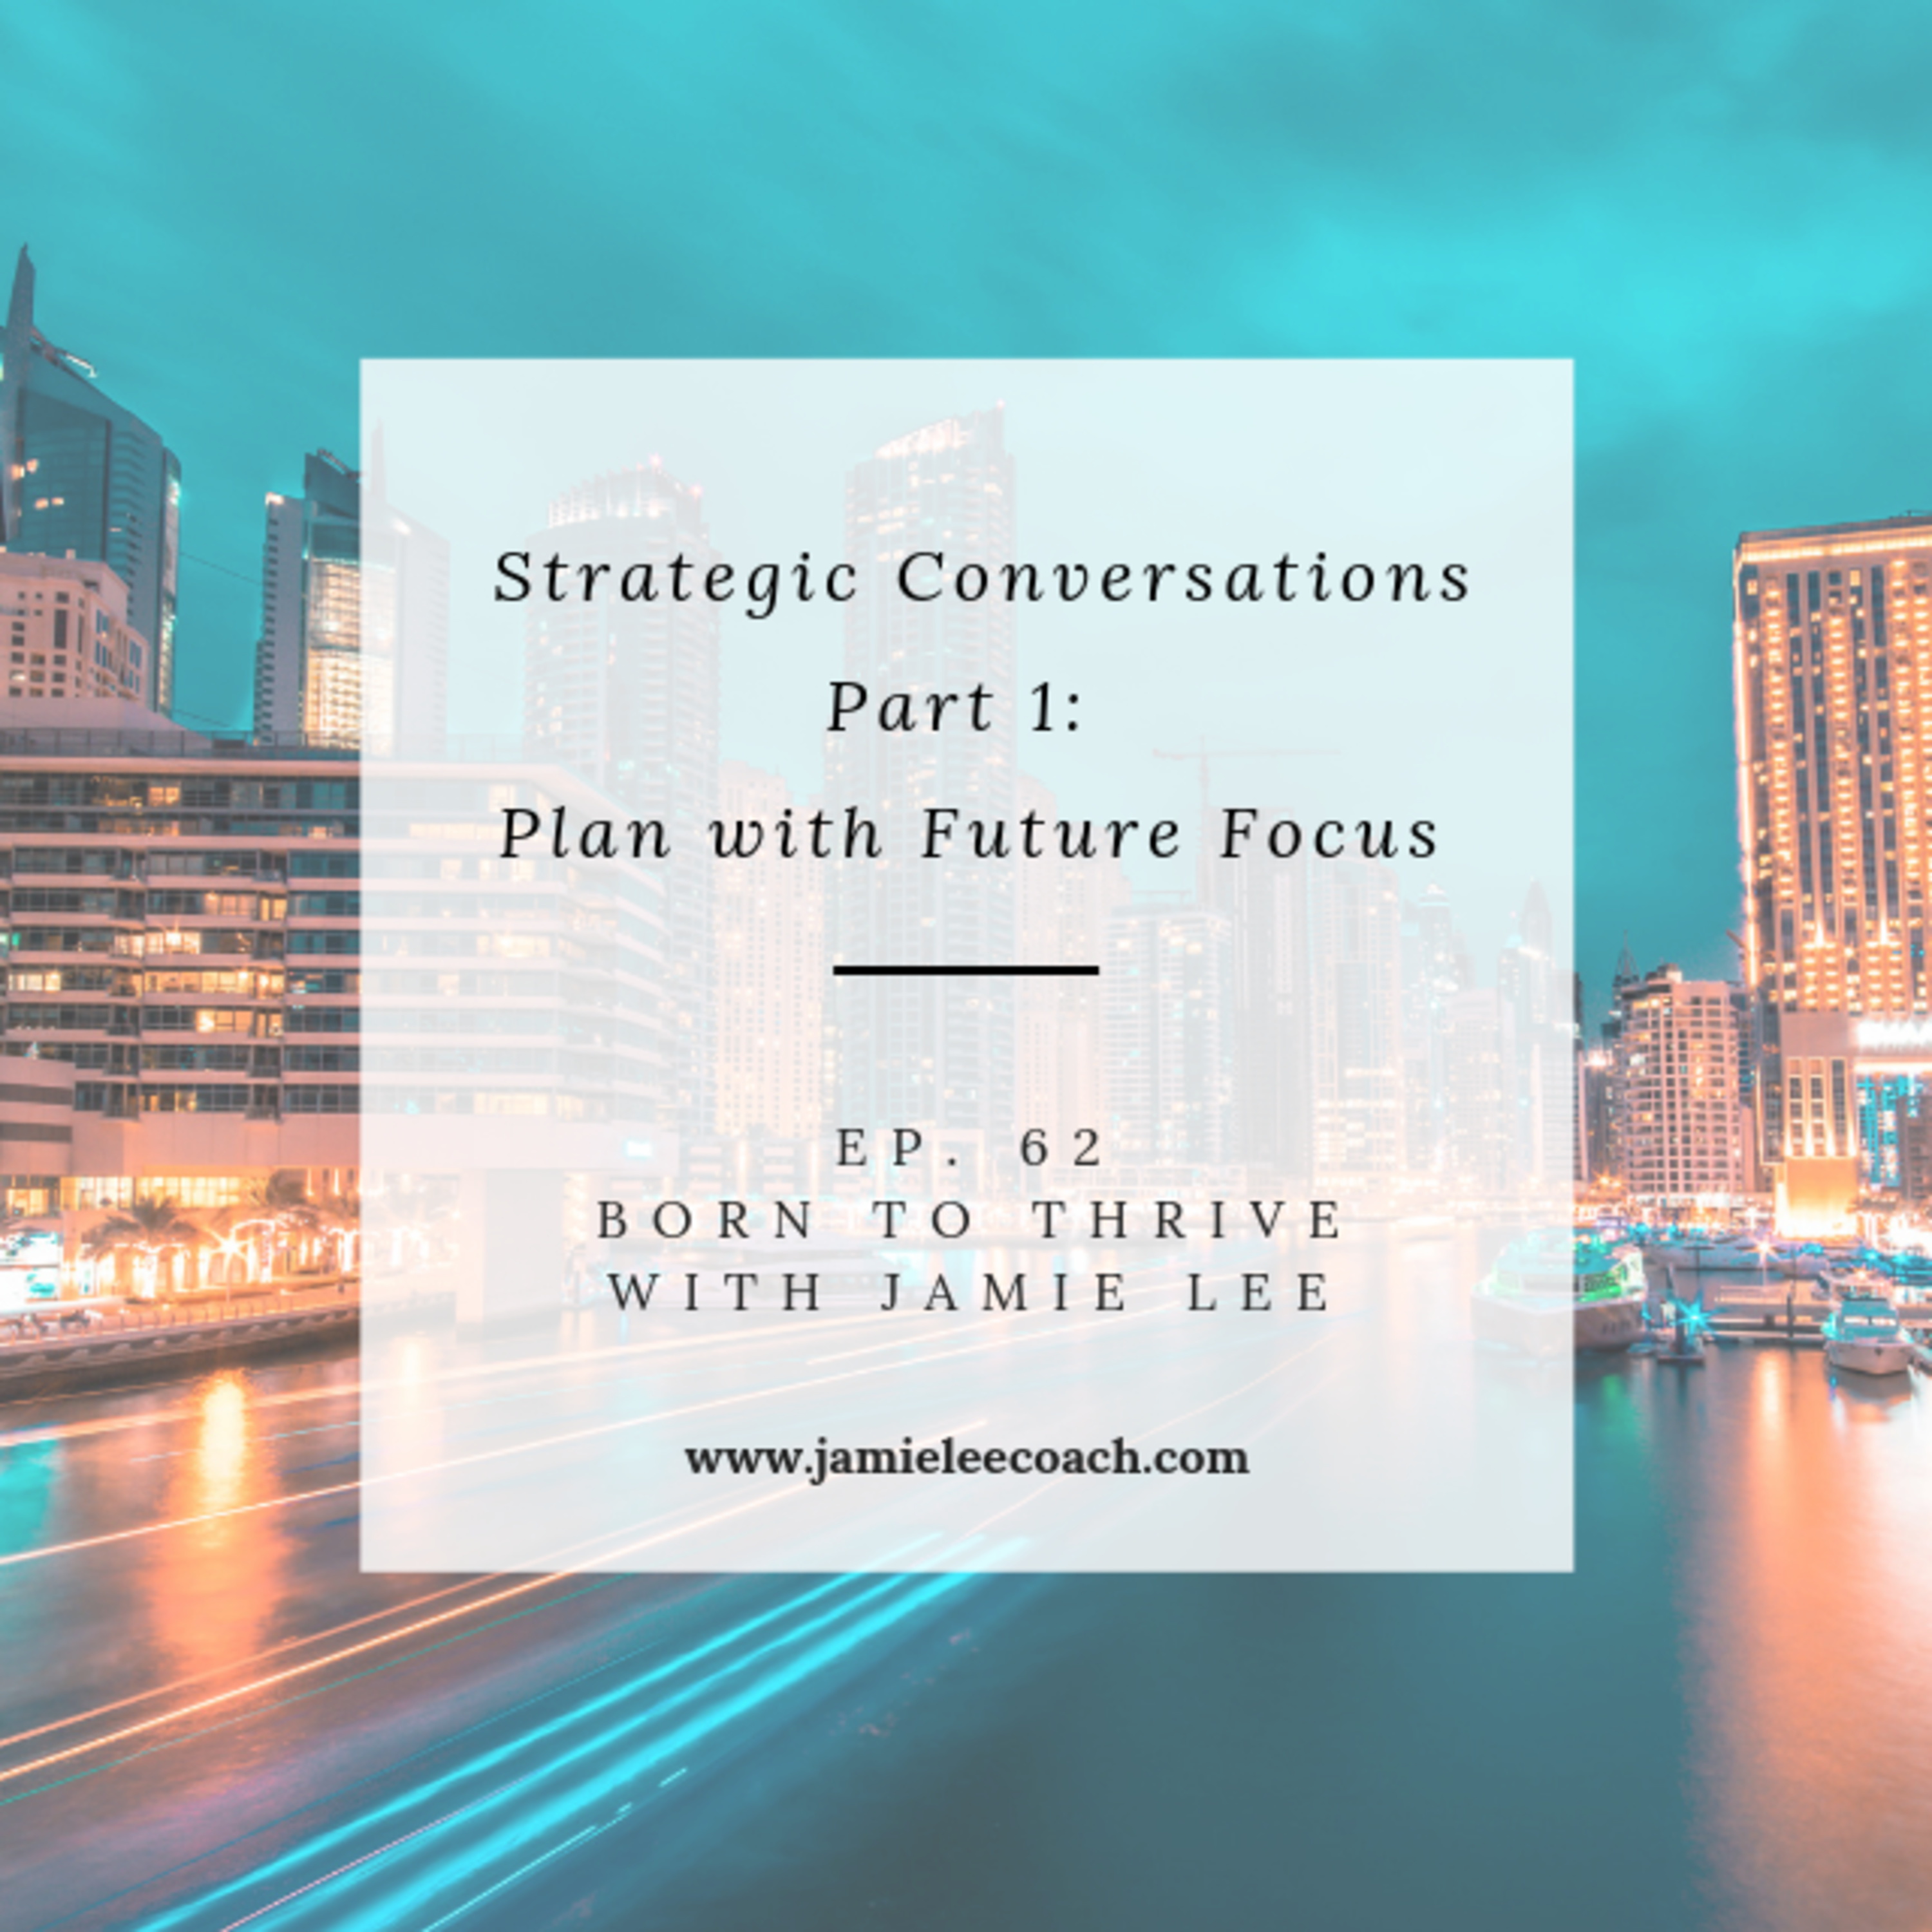 Ep. 62 Strategic Conversations Part 1 - Planning with Future Focus